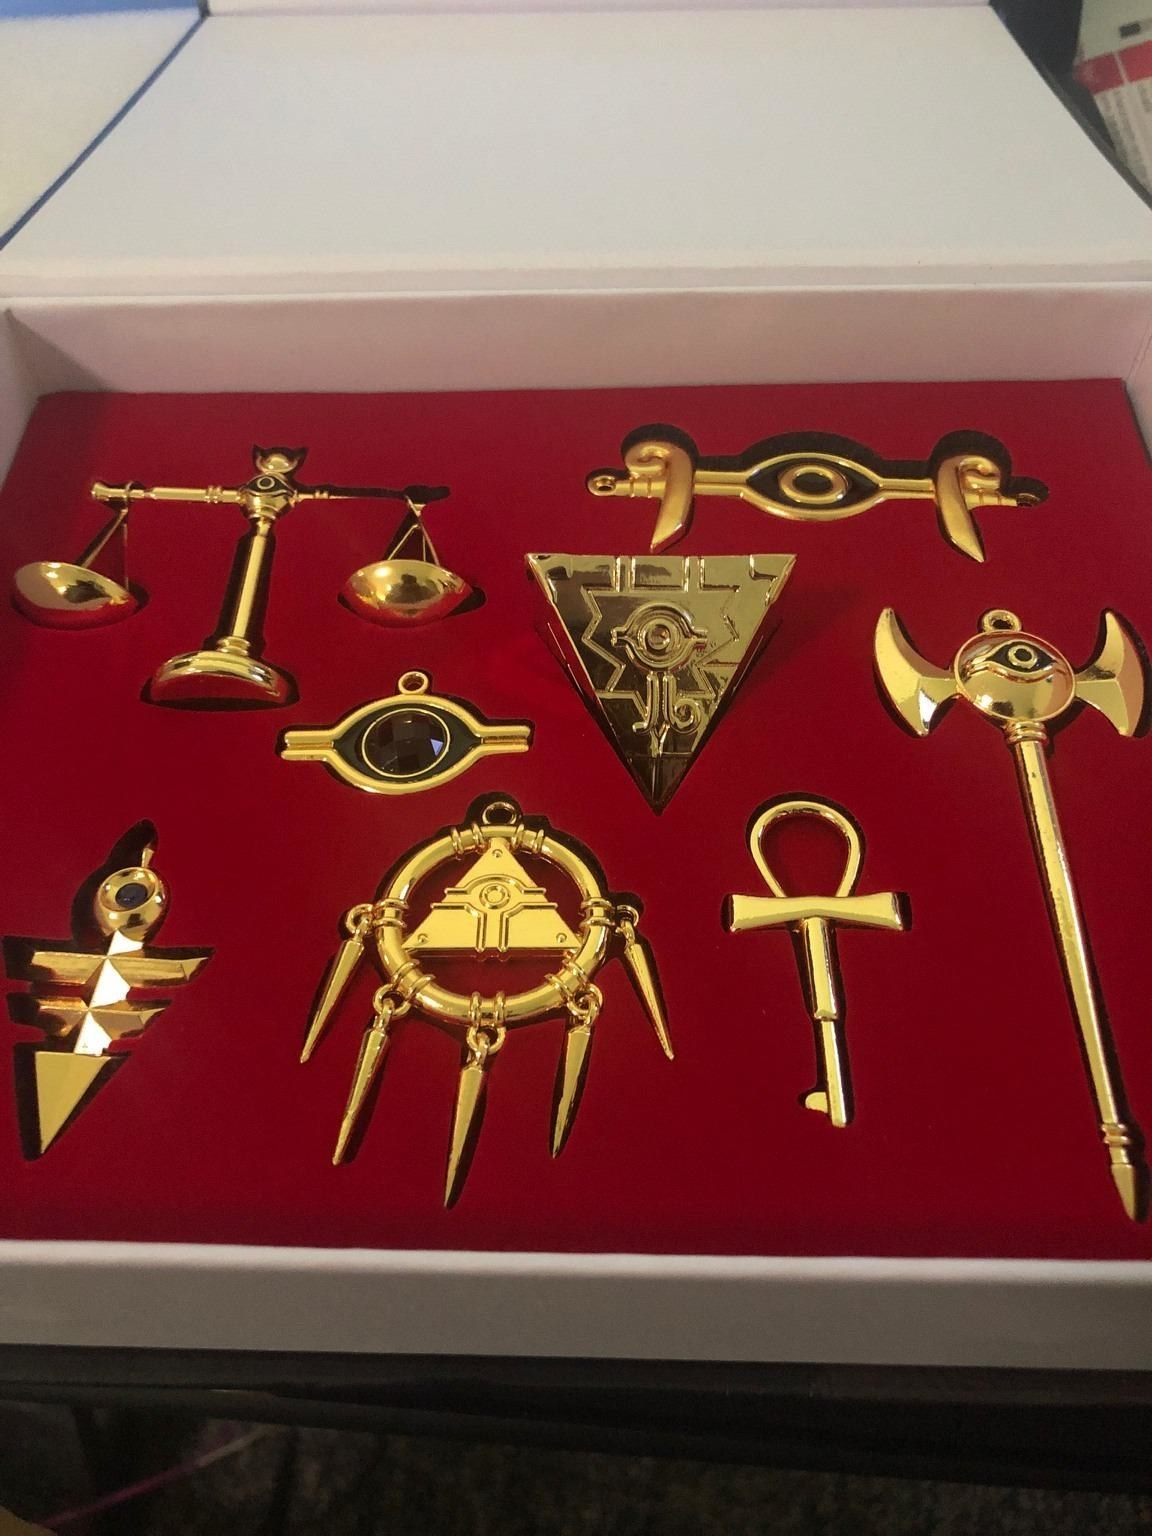 A reviewer's photo of the small gold item replicas in a red-lined gift box